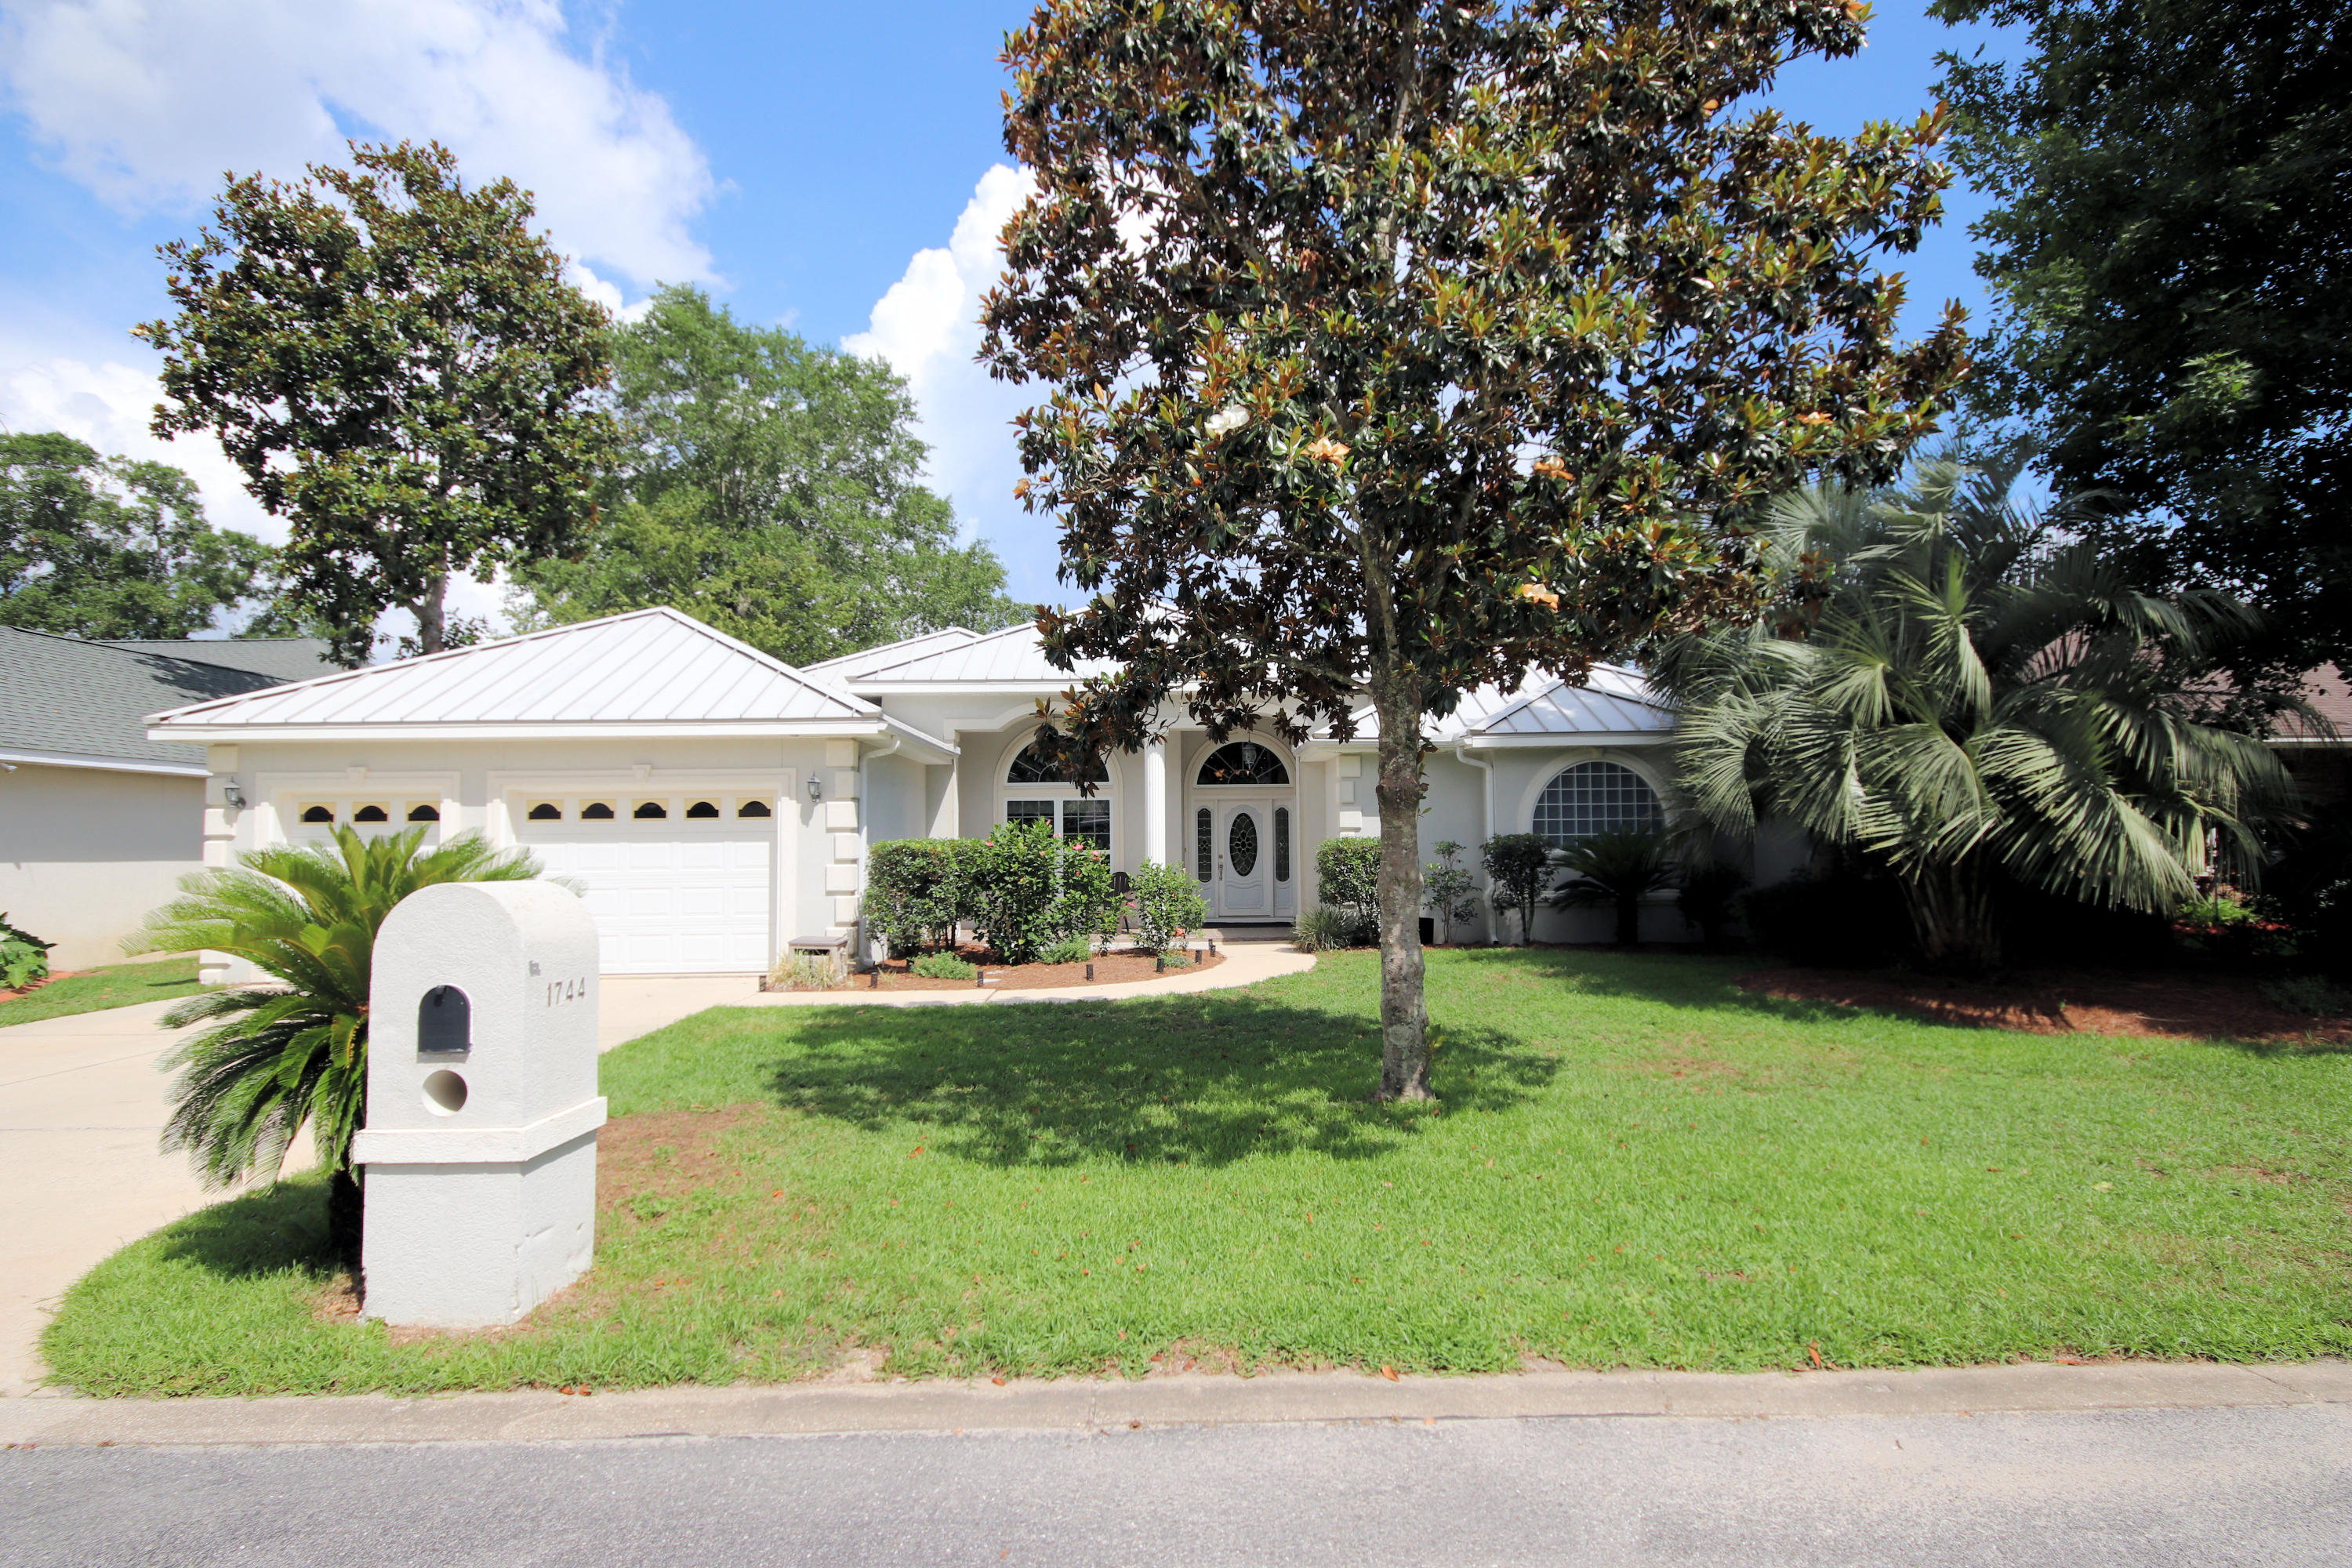 A 4 Bedroom 3 Bedroom Magnolia Forest S/d Home